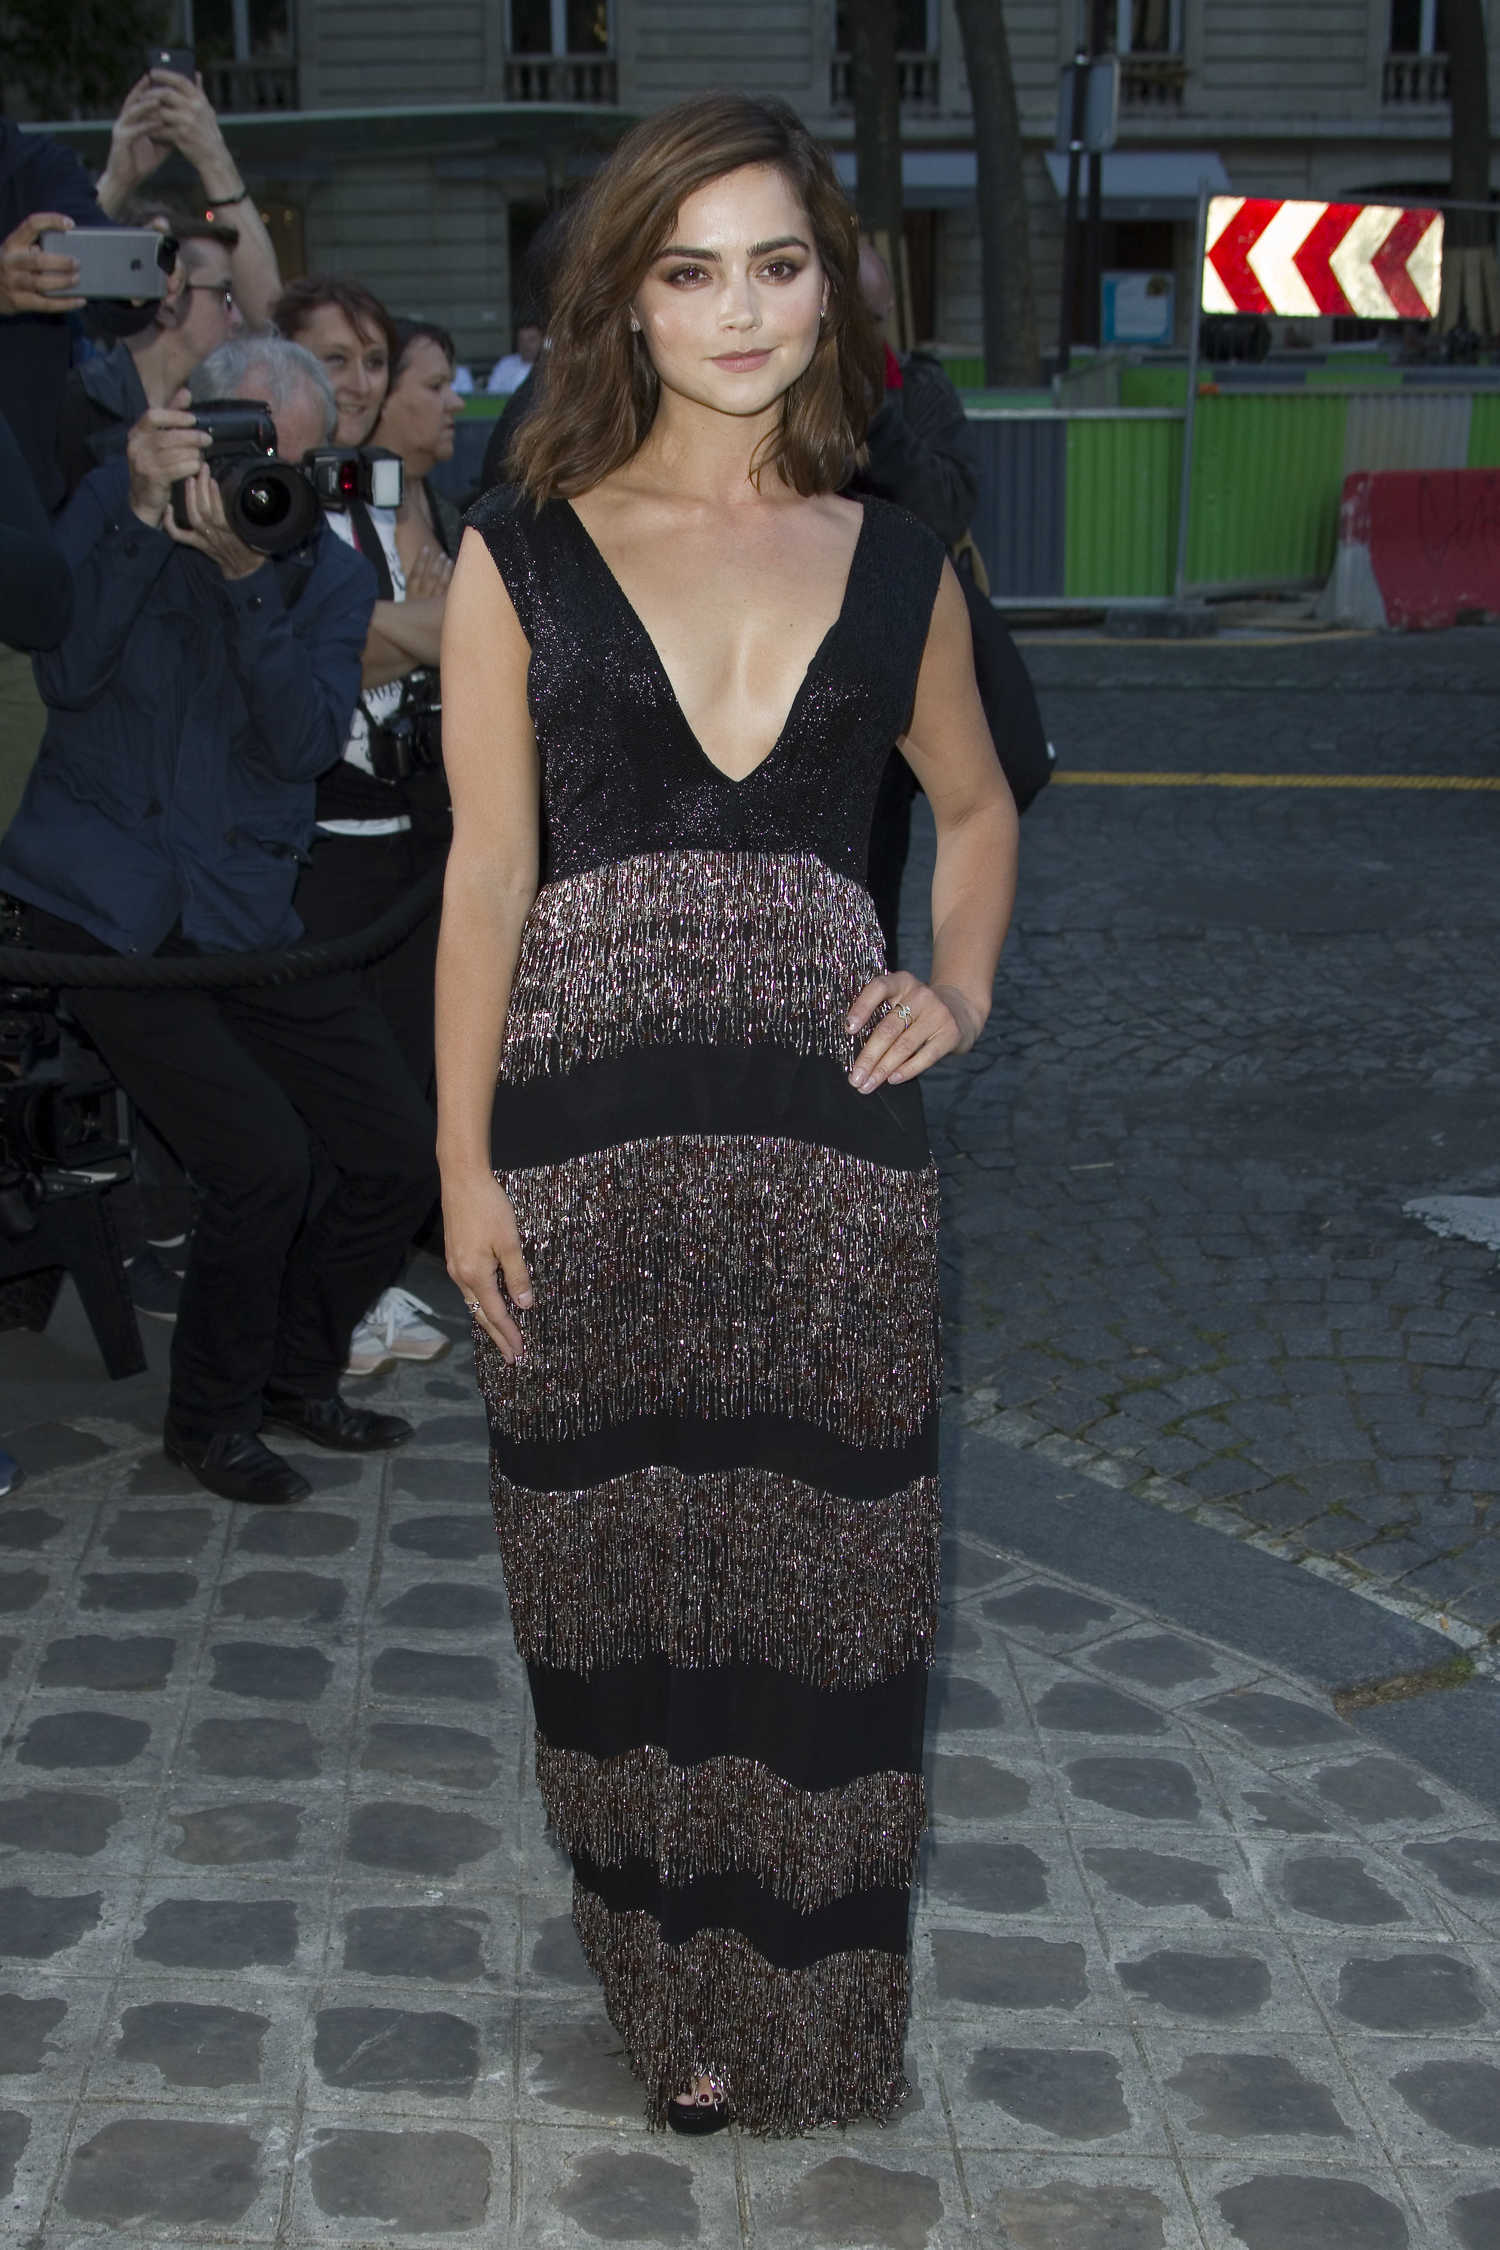 jenna coleman arrives at the vogue party in paris  u2013 celeb donut